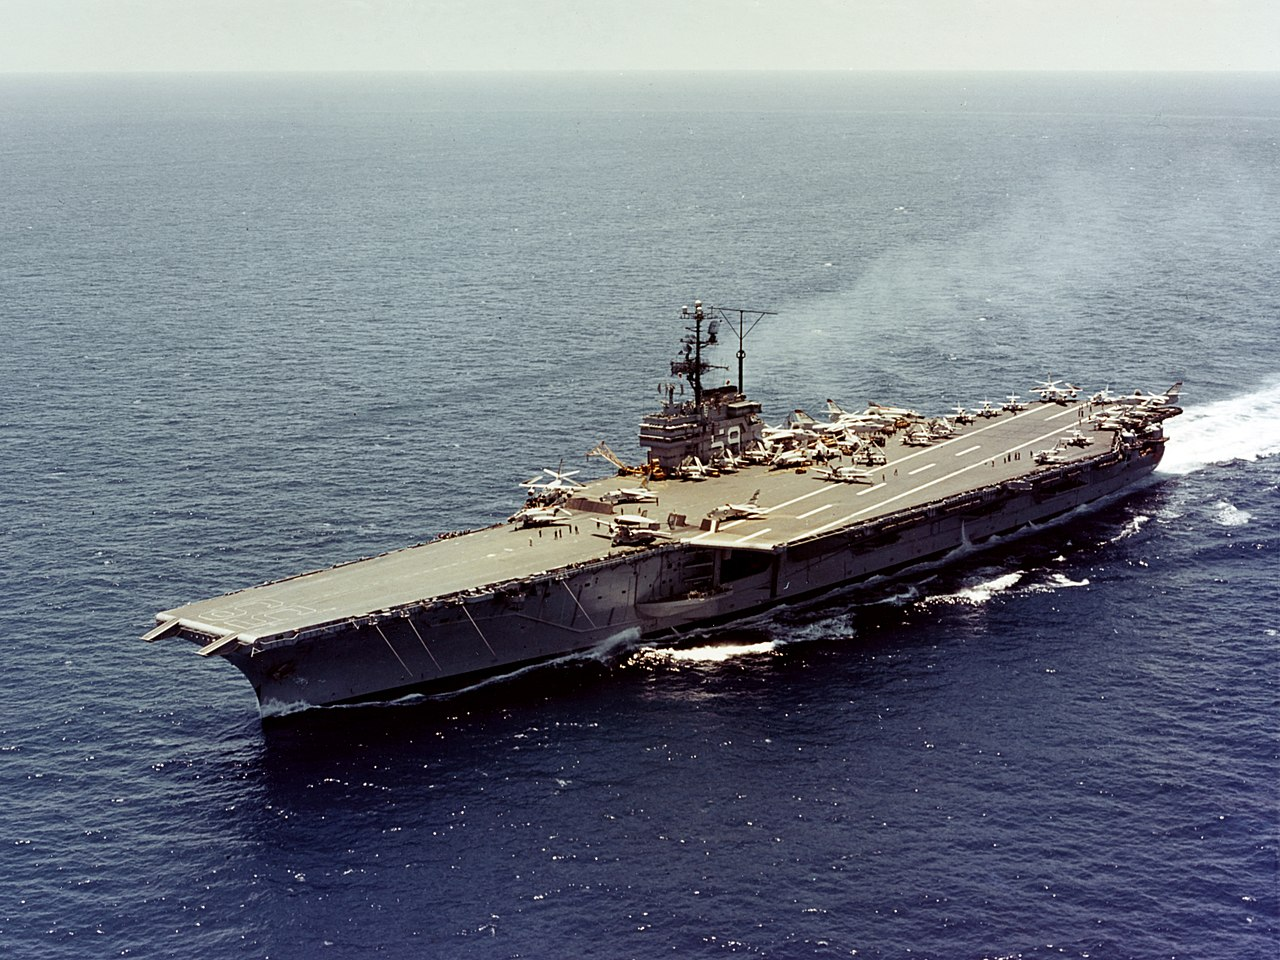 https://upload.wikimedia.org/wikipedia/commons/thumb/6/6c/USS_Forrestal_%28CVA-59%29_underway_at_sea_on_31_May_1962_%28KN-4507%29.jpg/1280px-USS_Forrestal_%28CVA-59%29_underway_at_sea_on_31_May_1962_%28KN-4507%29.jpg